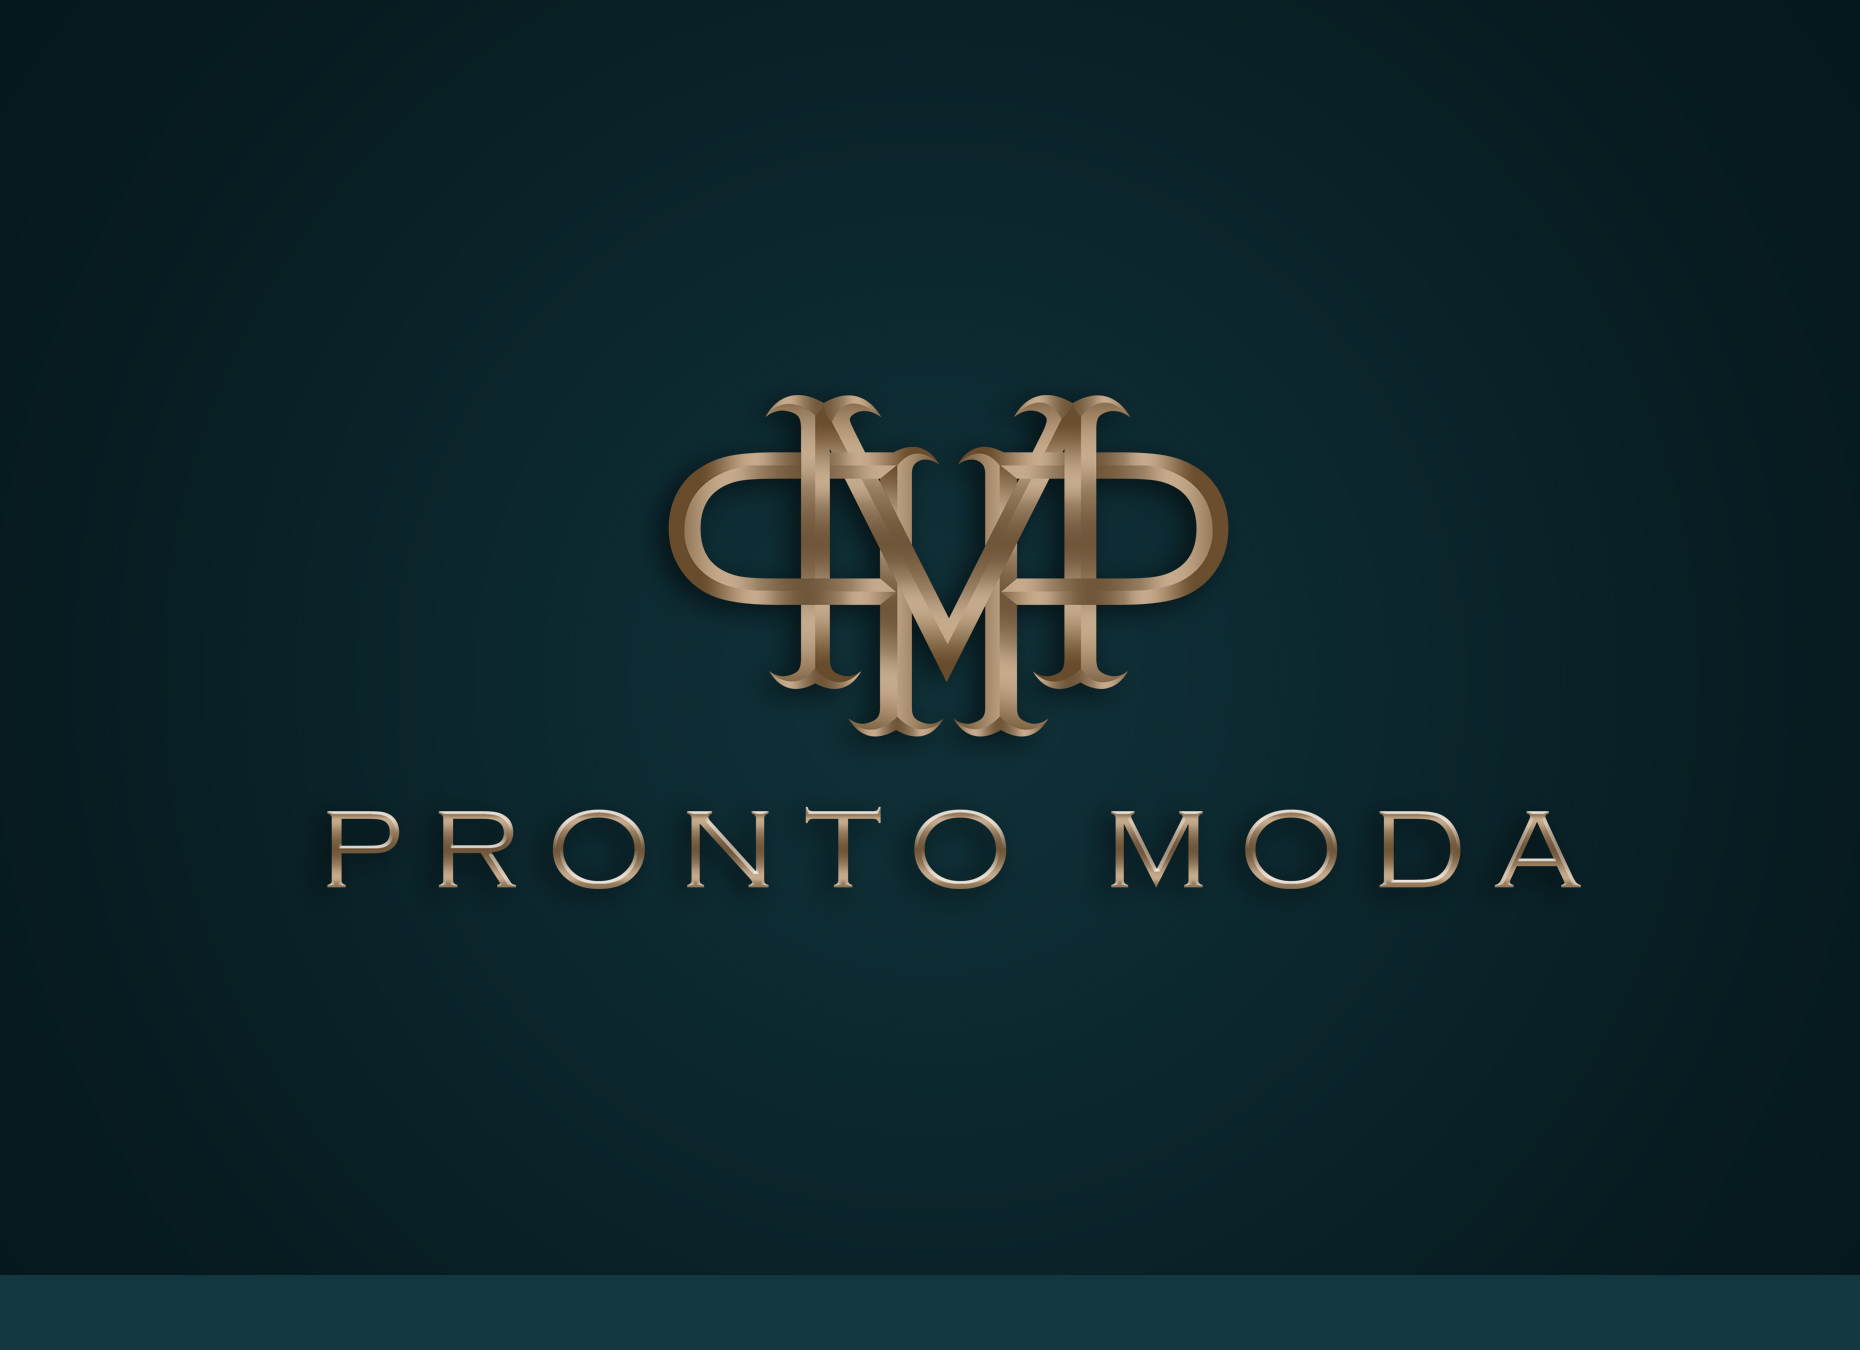 Logo Design by omARTist - Entry No. 8 in the Logo Design Contest Captivating Logo Design for Pronto moda.